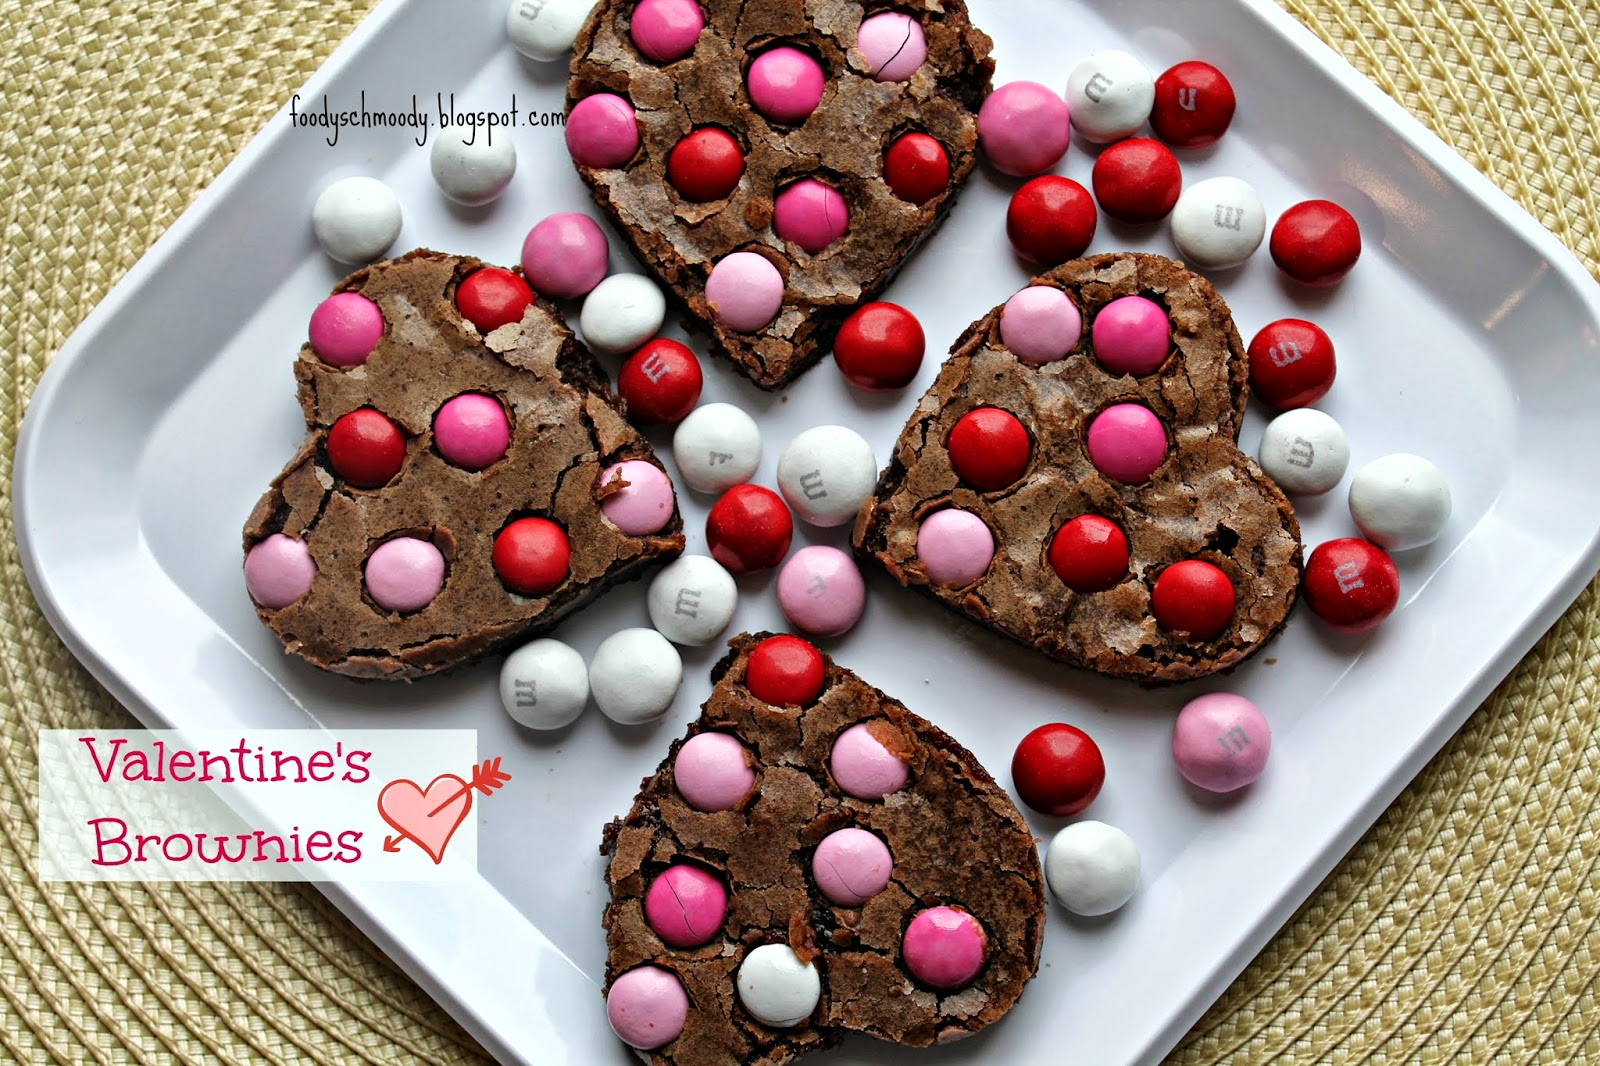 valentine's+brownies+3 - 10 Recipes for Great Valentine's Day